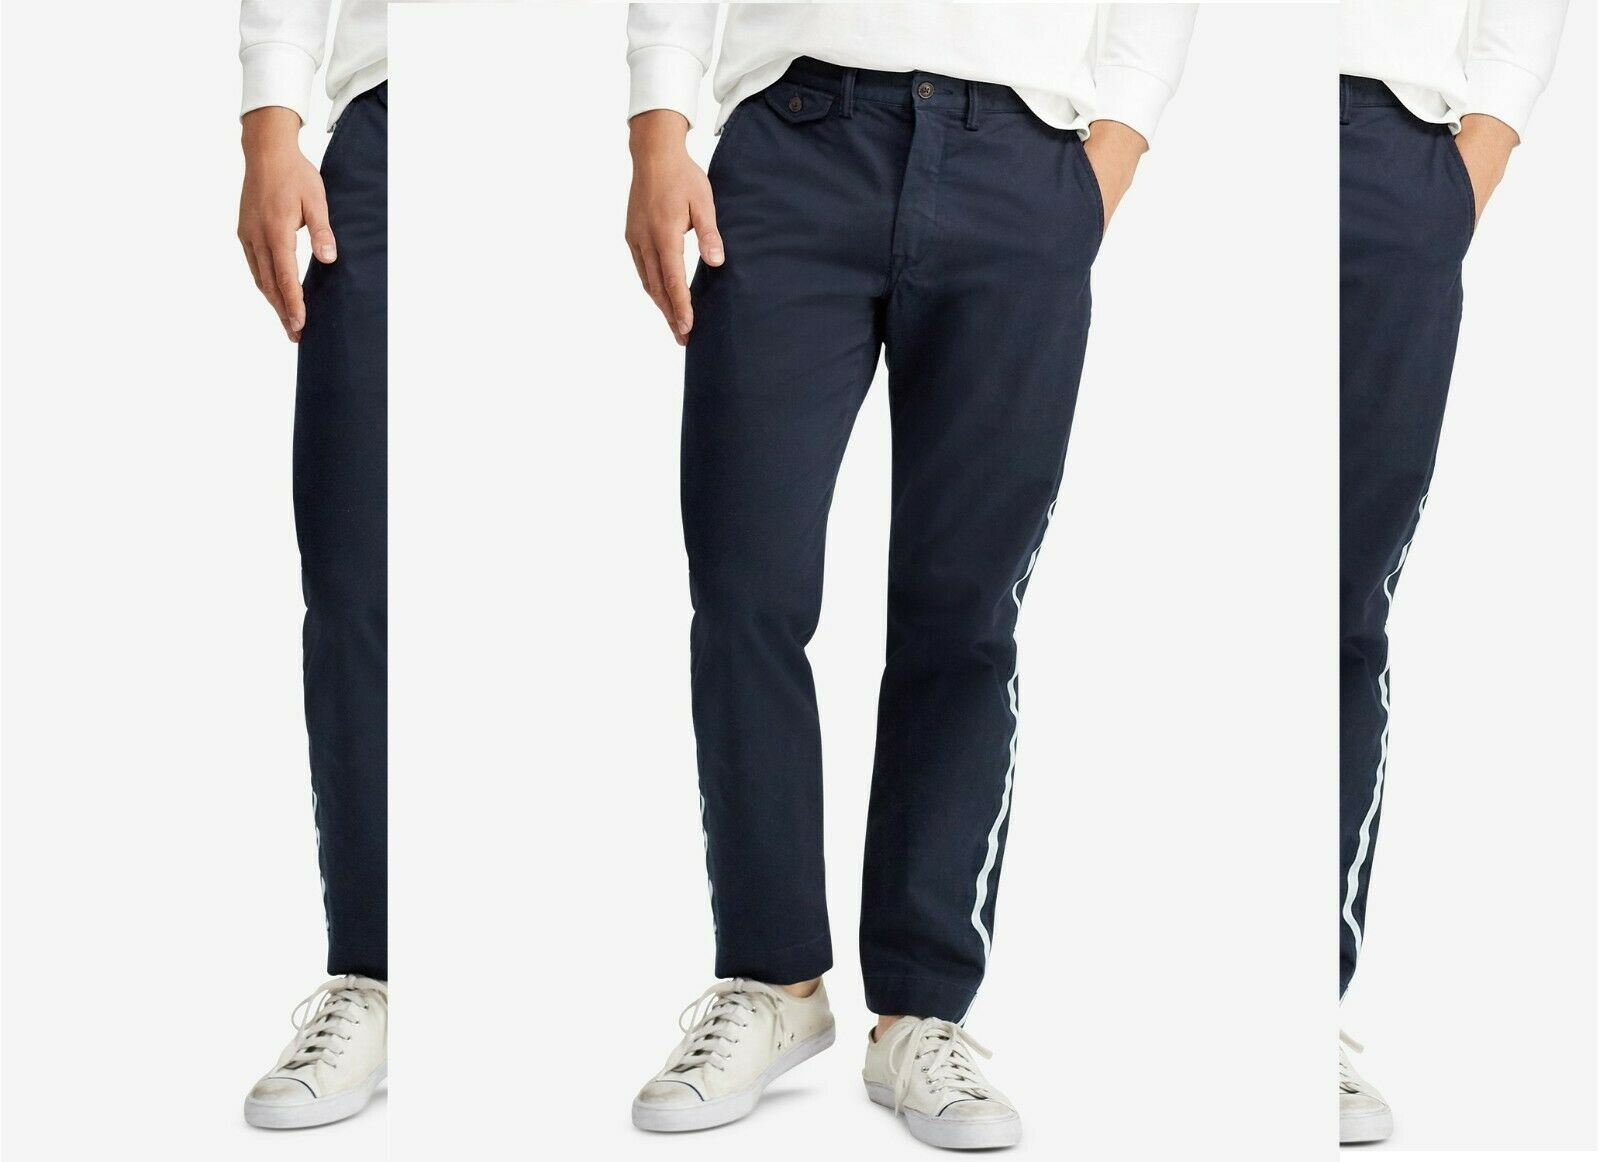 Polo Ralph Lauren Men's Stretch Straight Fit Bedford Chino Pants, Size 36X30, MS - $44.40